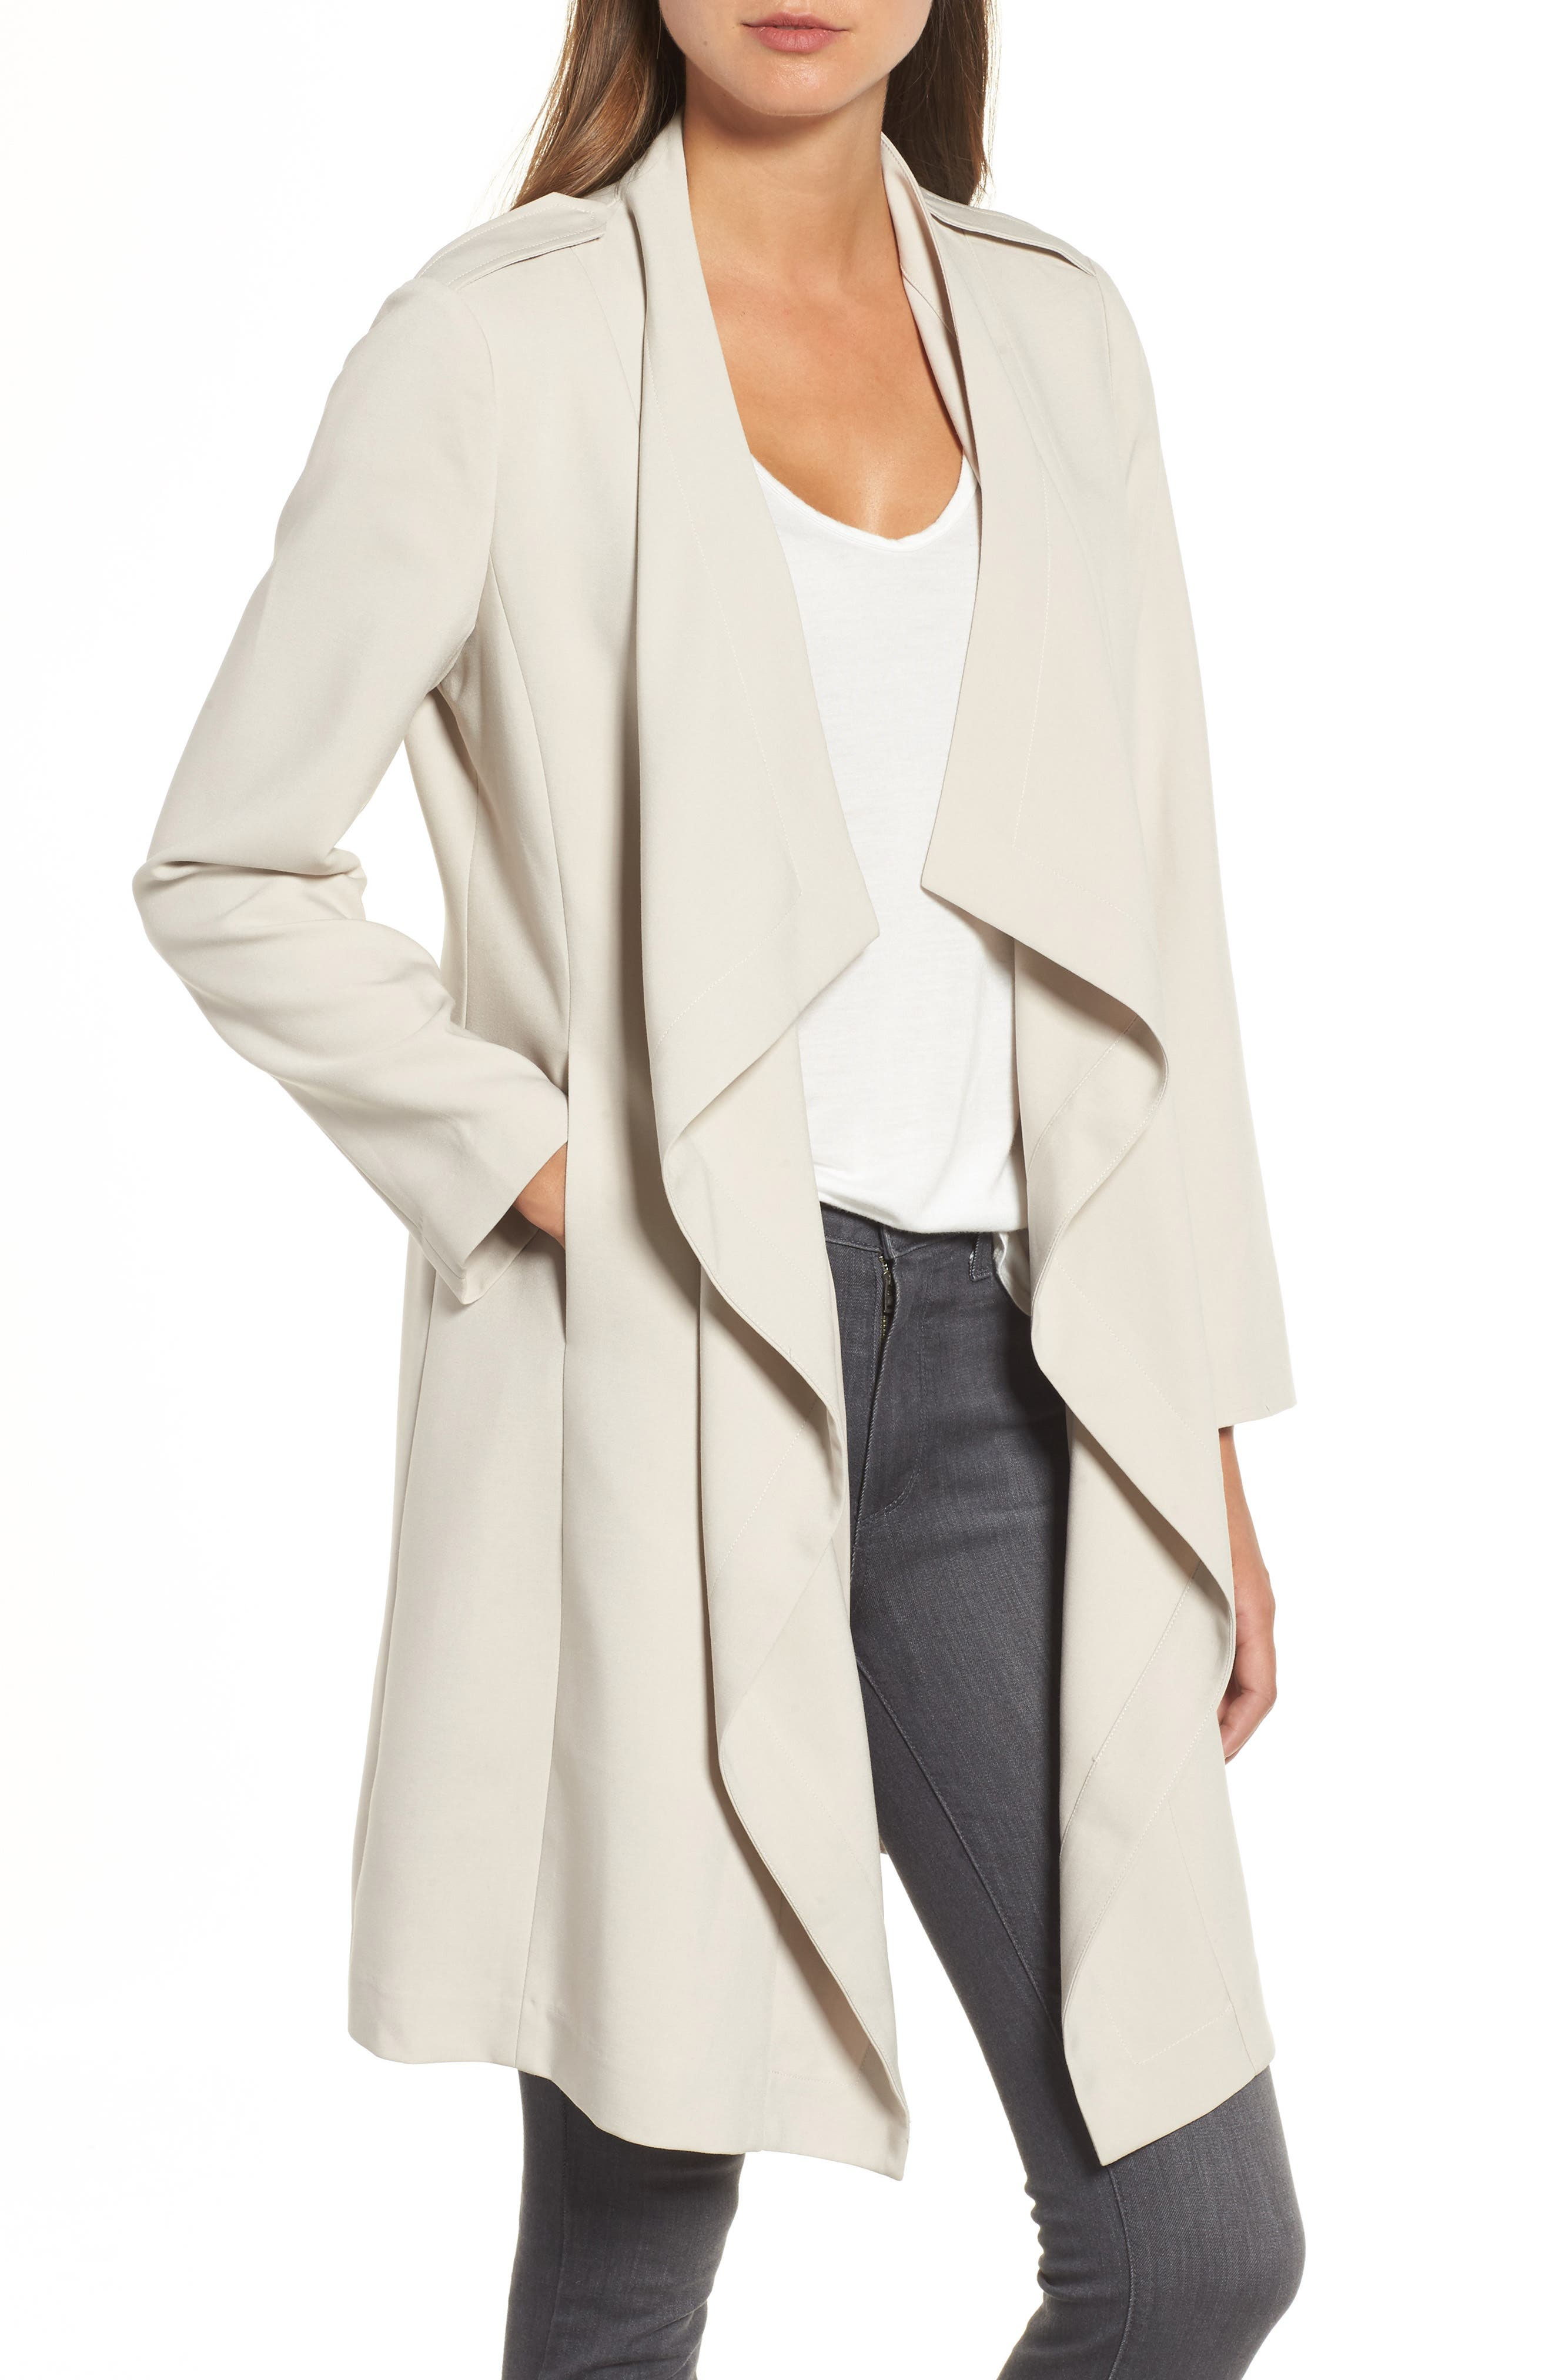 Bagatelle faux-leather (polyurethane) draped jacket. Draped, open front. BB Dakota Women's Wade Drape Front Faux Suede Jacket. by BB Dakota. $ $ 00 Prime. FREE Shipping on eligible orders. Some sizes/colors are Prime eligible. 5 out of 5 stars 3. Product Features Drape front.